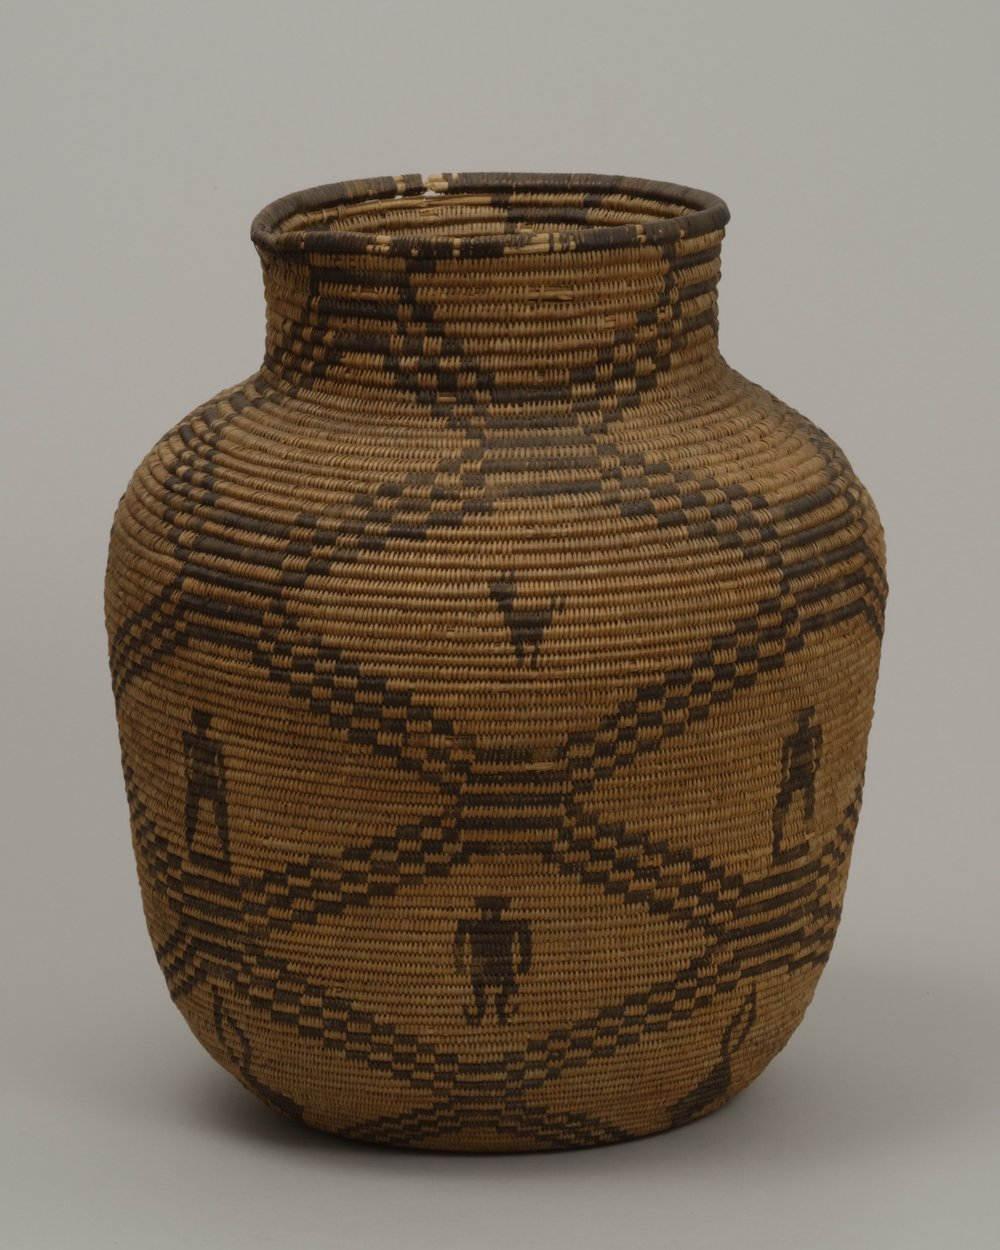 Western Apache, Arizona, jar-shaped basket, early 20th century. Willow, martynia, and cottonwood, 15 15/16 × 13 3/8 in. Hood Museum of Art, Dartmouth College: Gift of Miss Annah P. Hazen; 158.24.14208.